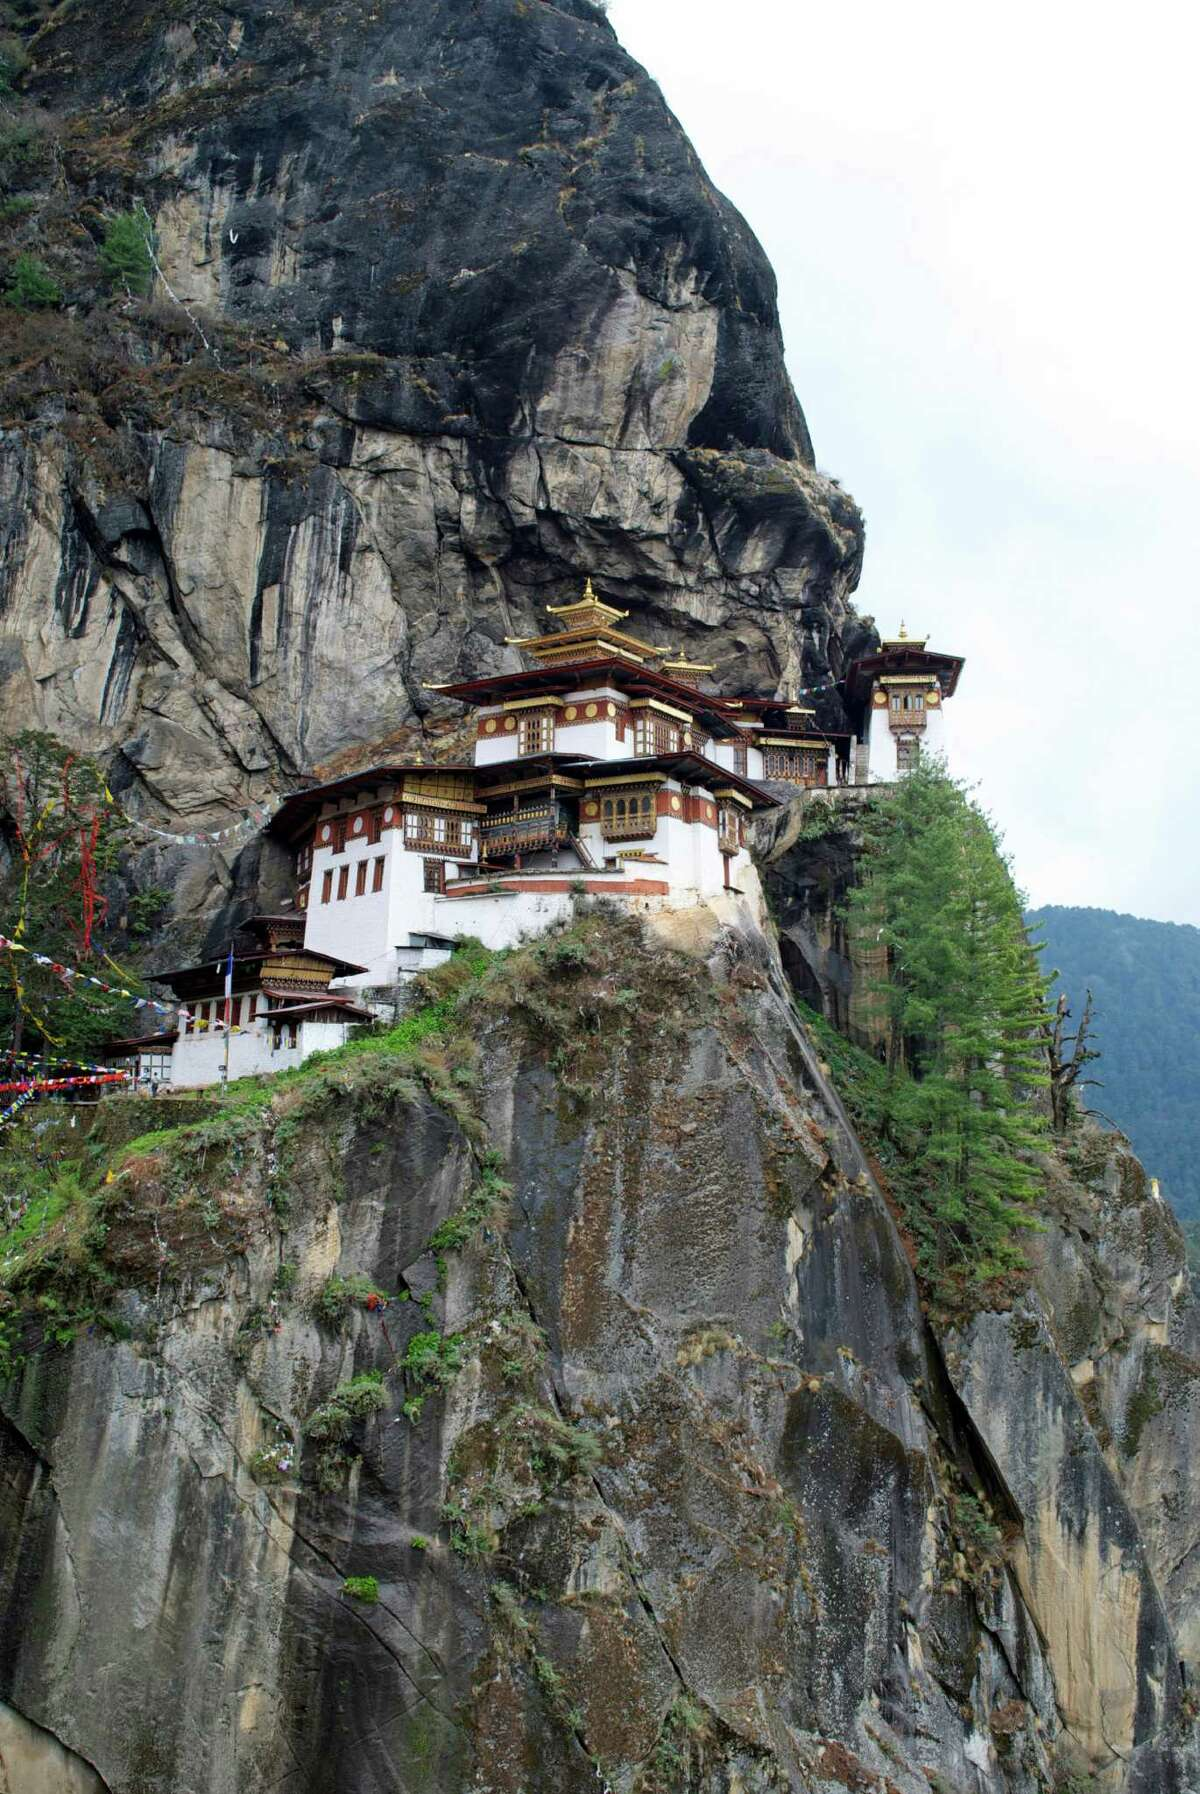 BHUTAN A policy of wellbeing over wealth creates a perfect balance of tourism and spirituality in this remote, mountainous country.